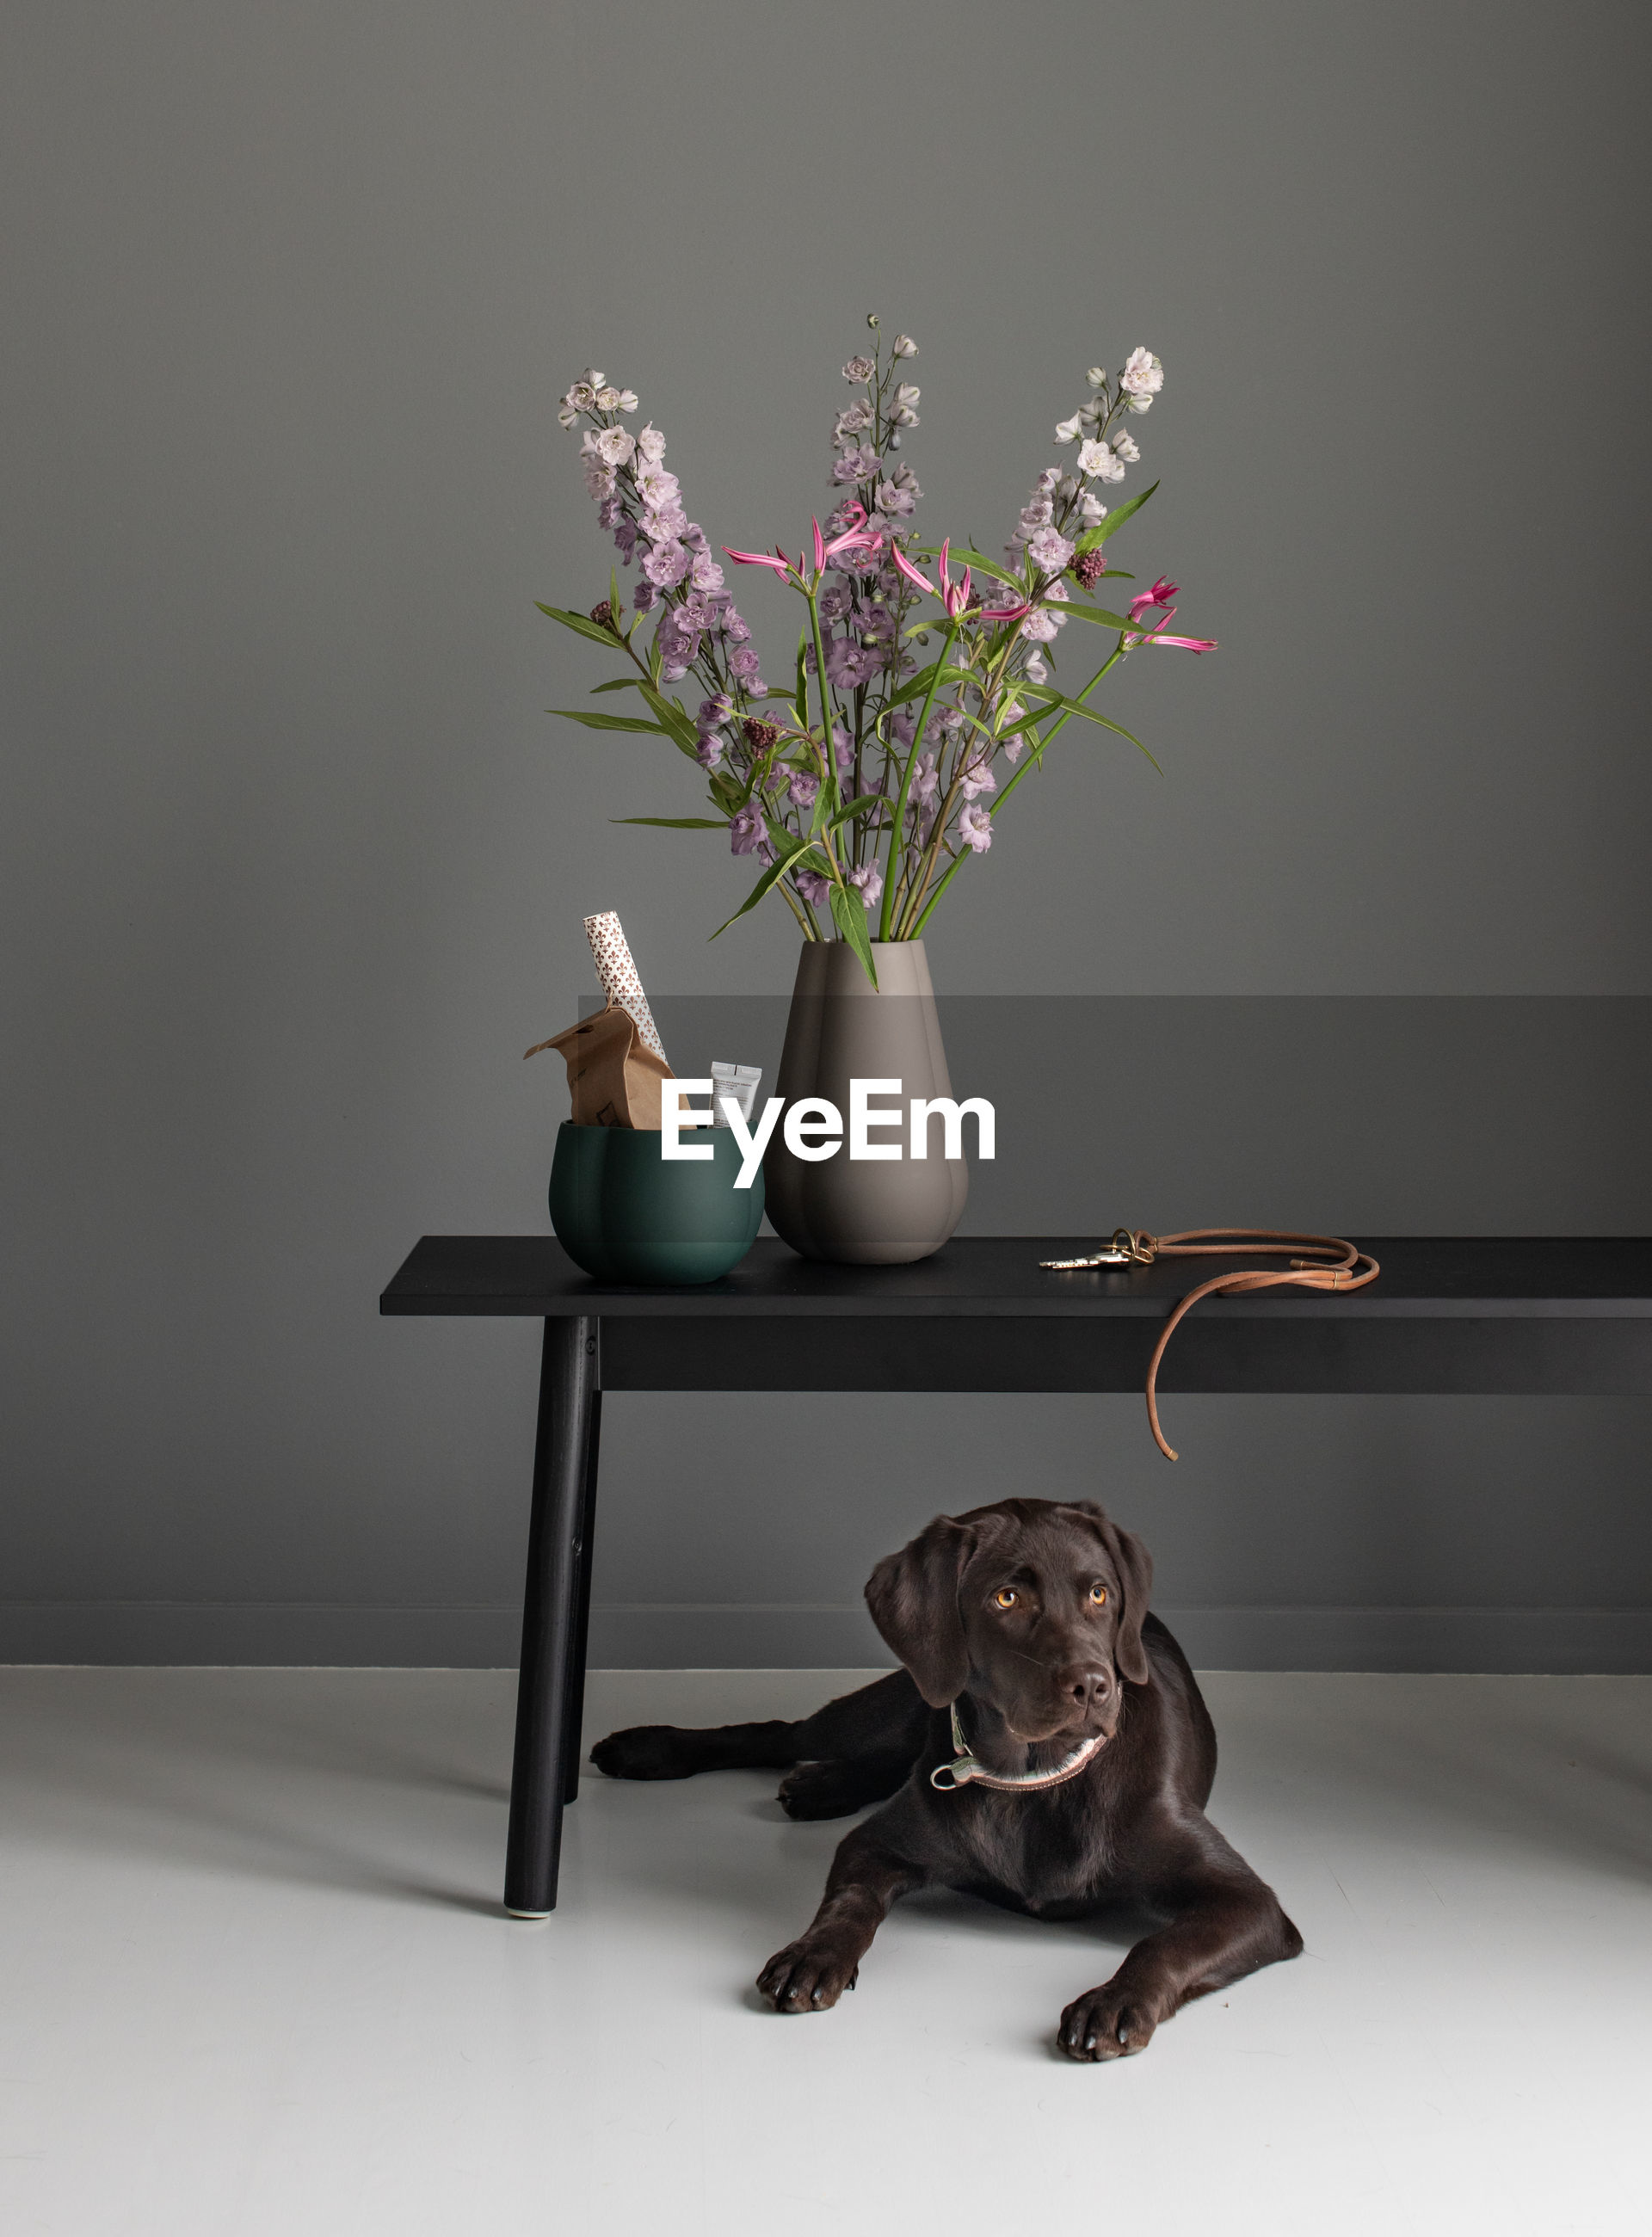 VIEW OF DOG SITTING ON TABLE